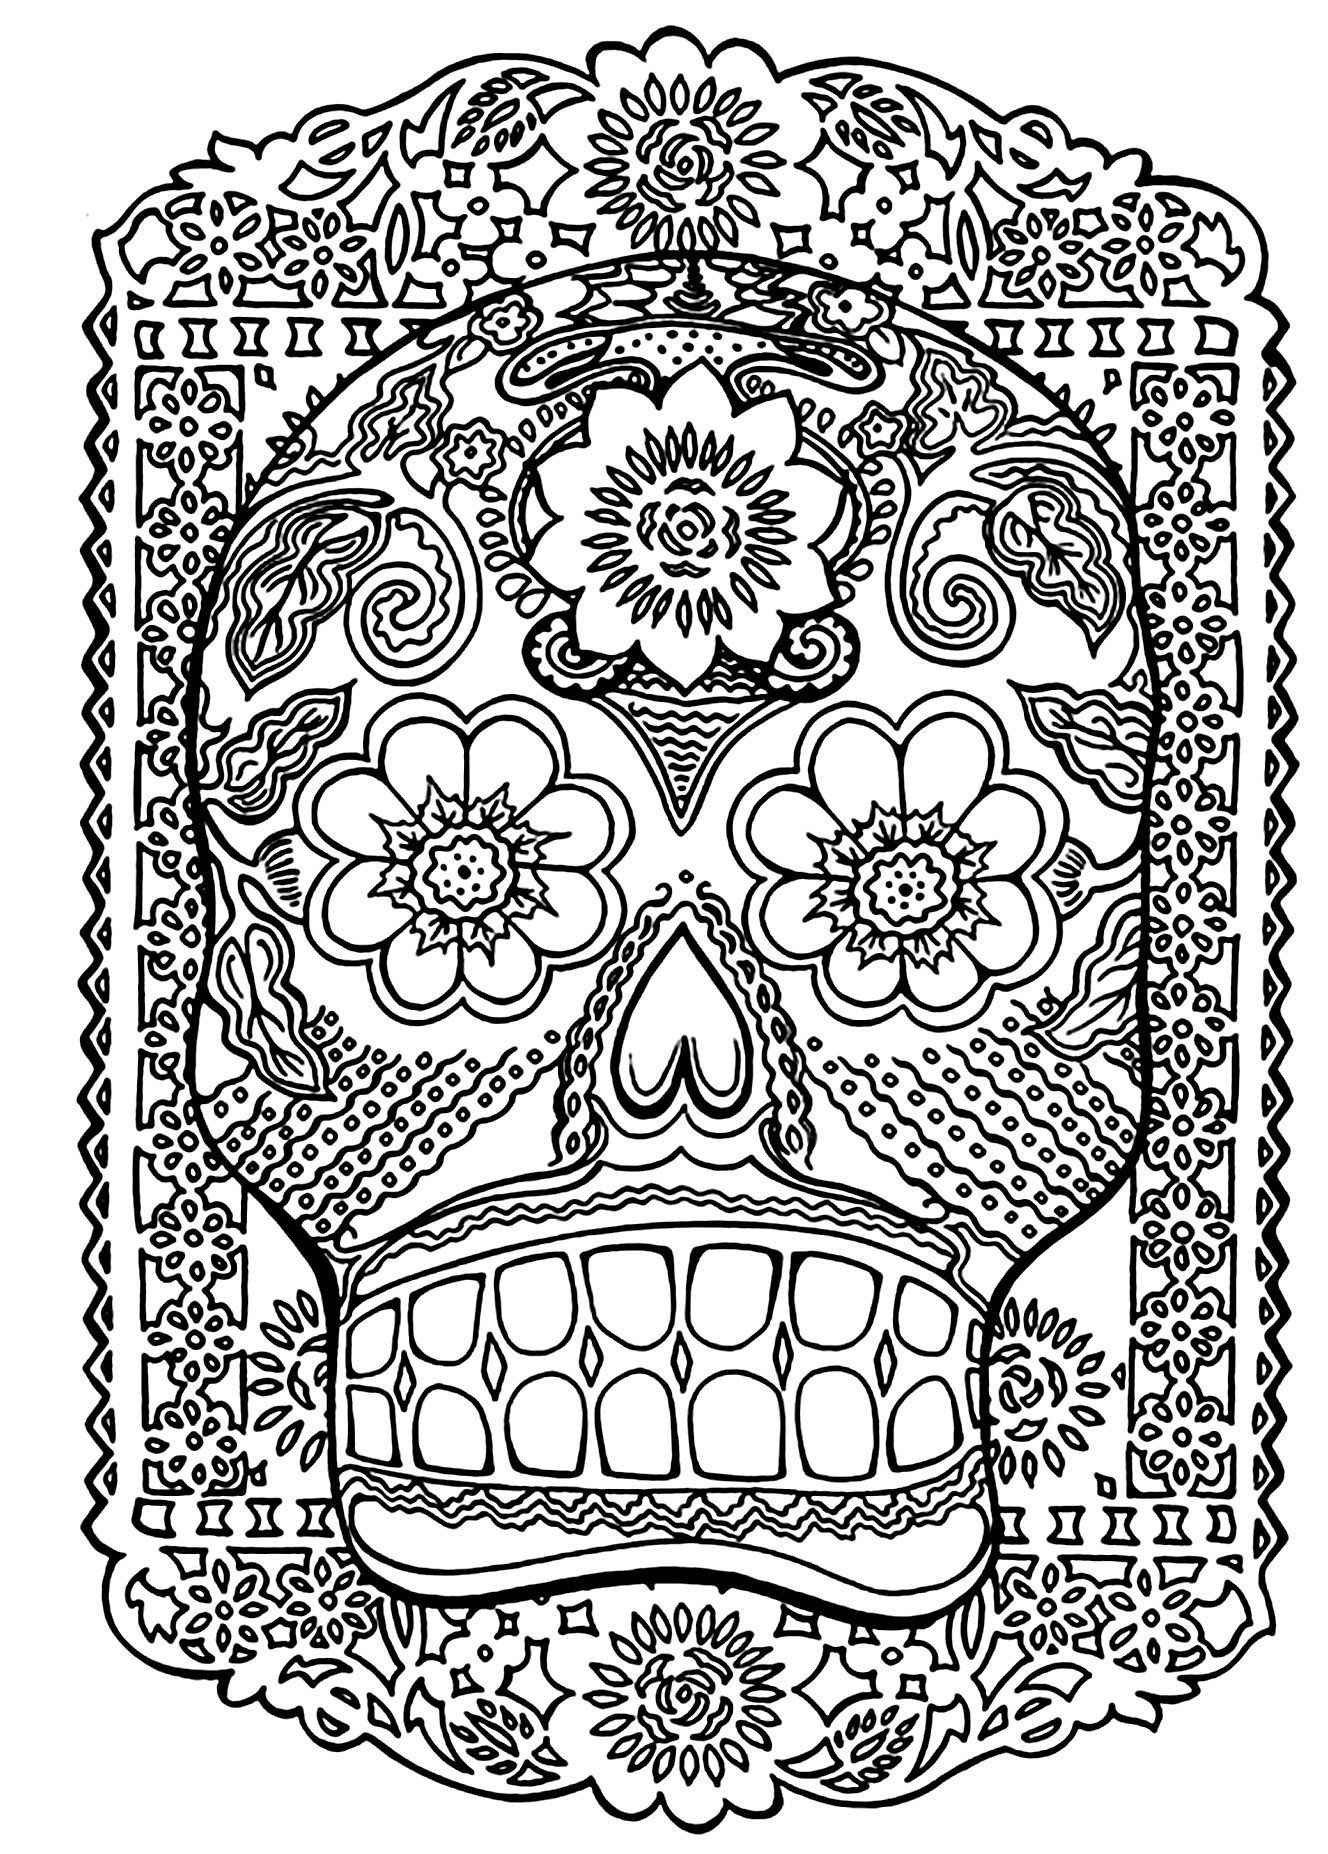 1328x1854 To Print This Free Coloring Page Skull Head Antistress